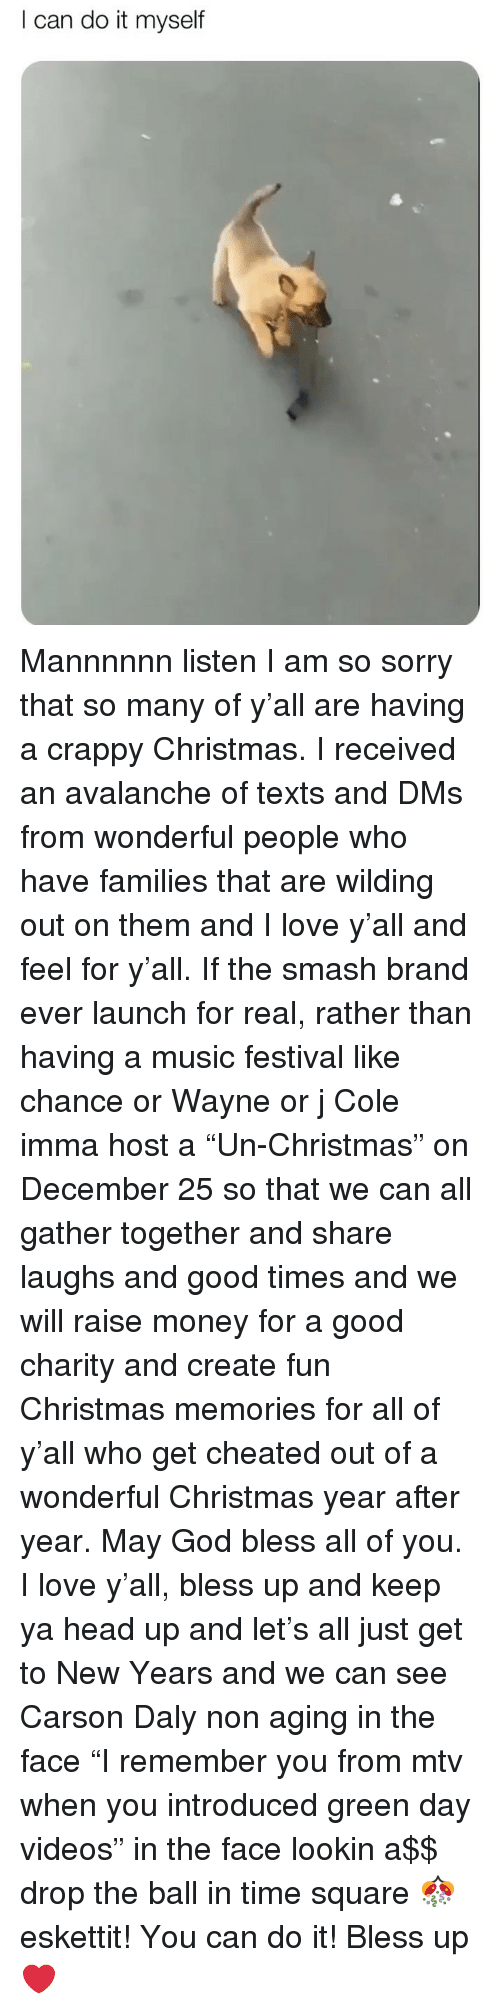 "MTV: I can do it myself Mannnnnn listen I am so sorry that so many of y'all are having a crappy Christmas. I received an avalanche of texts and DMs from wonderful people who have families that are wilding out on them and I love y'all and feel for y'all. If the smash brand ever launch for real, rather than having a music festival like chance or Wayne or j Cole imma host a ""Un-Christmas"" on December 25 so that we can all gather together and share laughs and good times and we will raise money for a good charity and create fun Christmas memories for all of y'all who get cheated out of a wonderful Christmas year after year. May God bless all of you. I love y'all, bless up and keep ya head up and let's all just get to New Years and we can see Carson Daly non aging in the face ""I remember you from mtv when you introduced green day videos"" in the face lookin a$$ drop the ball in time square 🎊 eskettit! You can do it! Bless up ❤️"